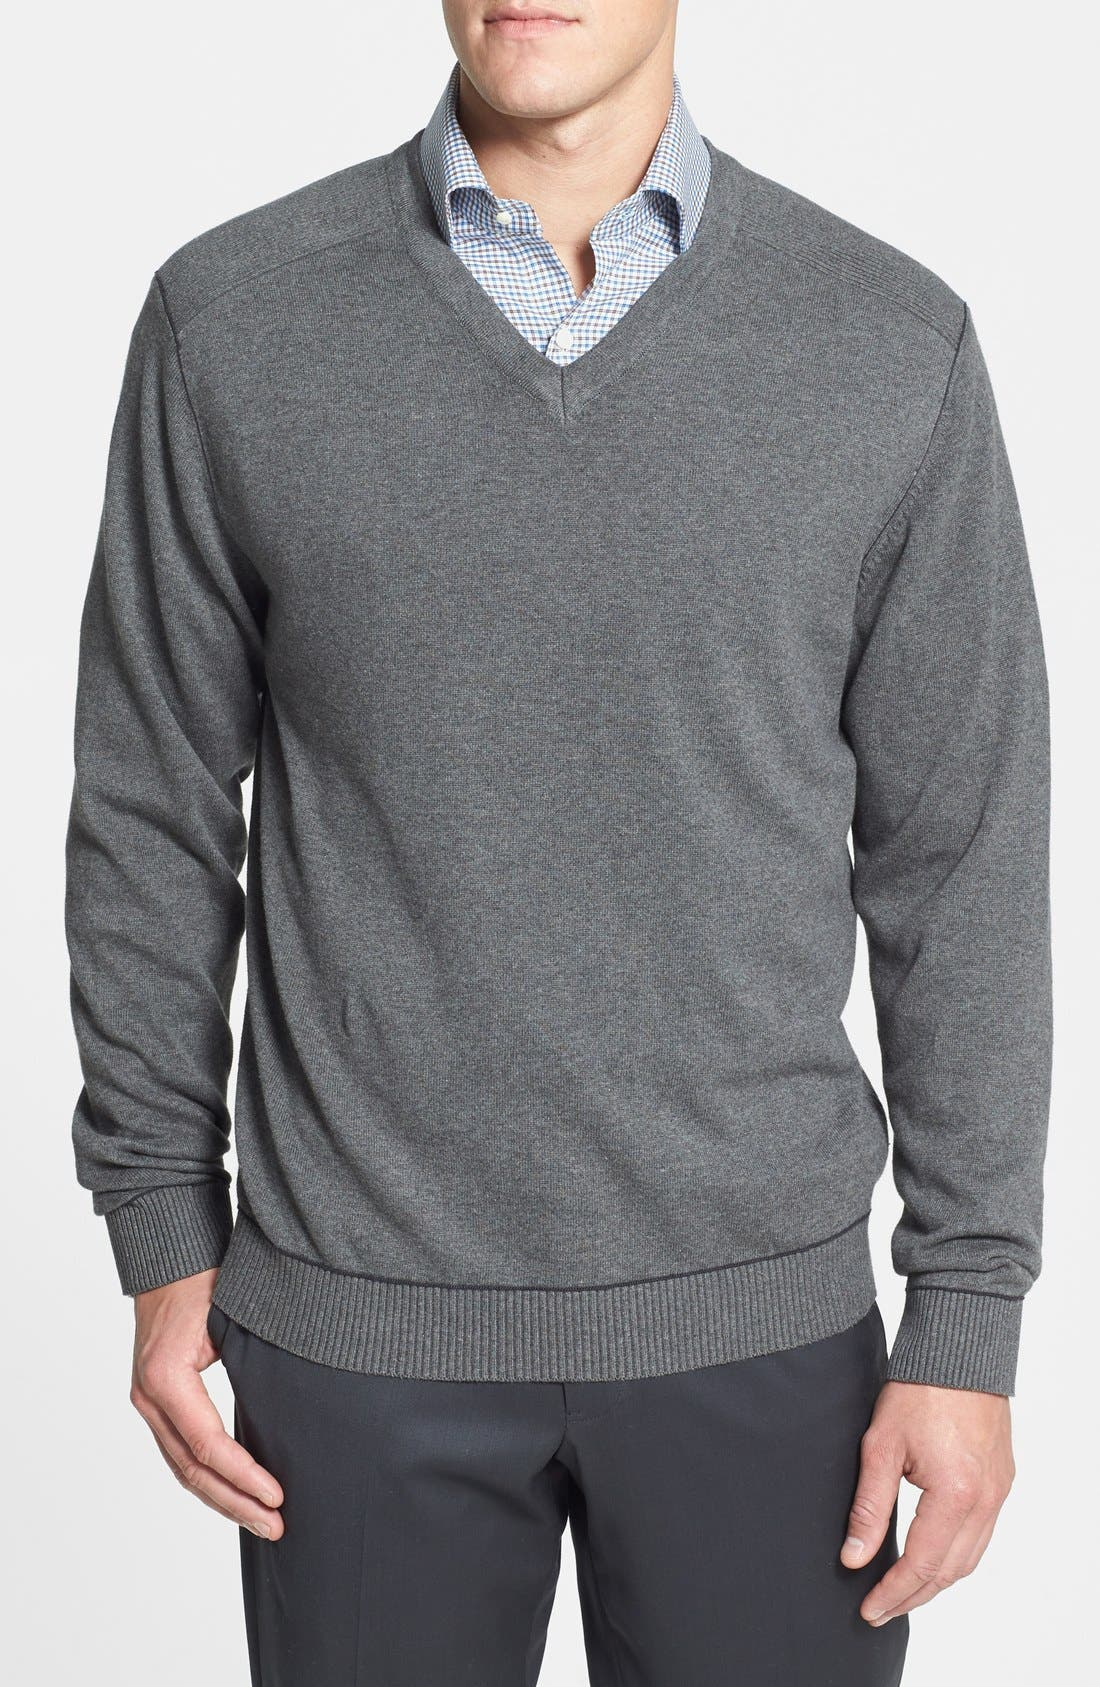 Cutter & Buck 'Broadview' Cotton V-Neck Sweater